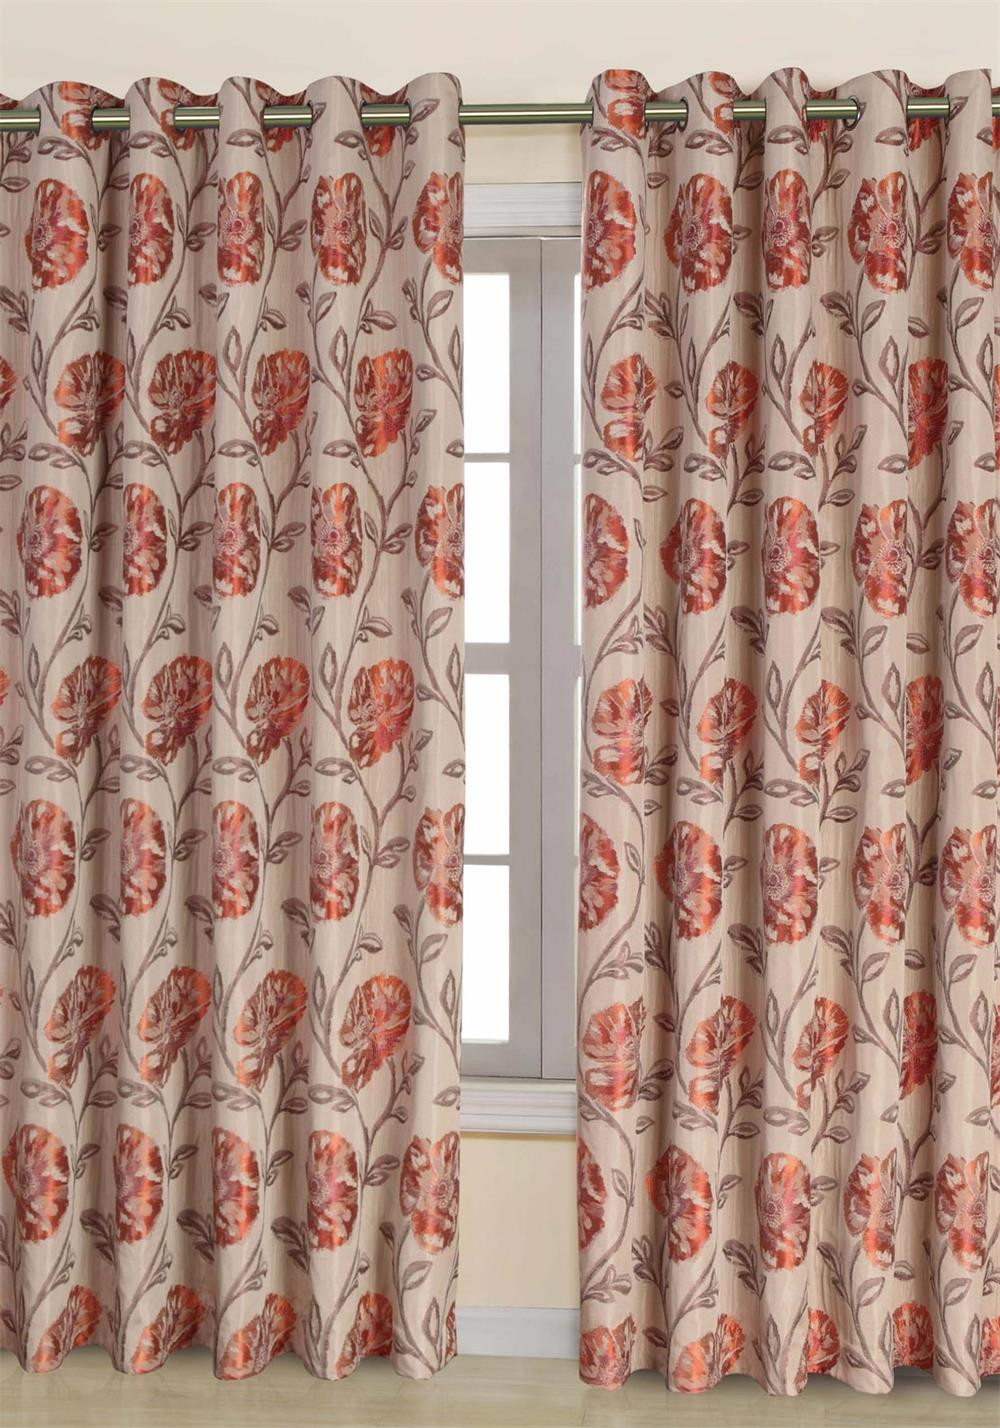 Scatterbox Maisey Eyelet Fully Lined Ready-Made Curtains, Beige and Terracotta